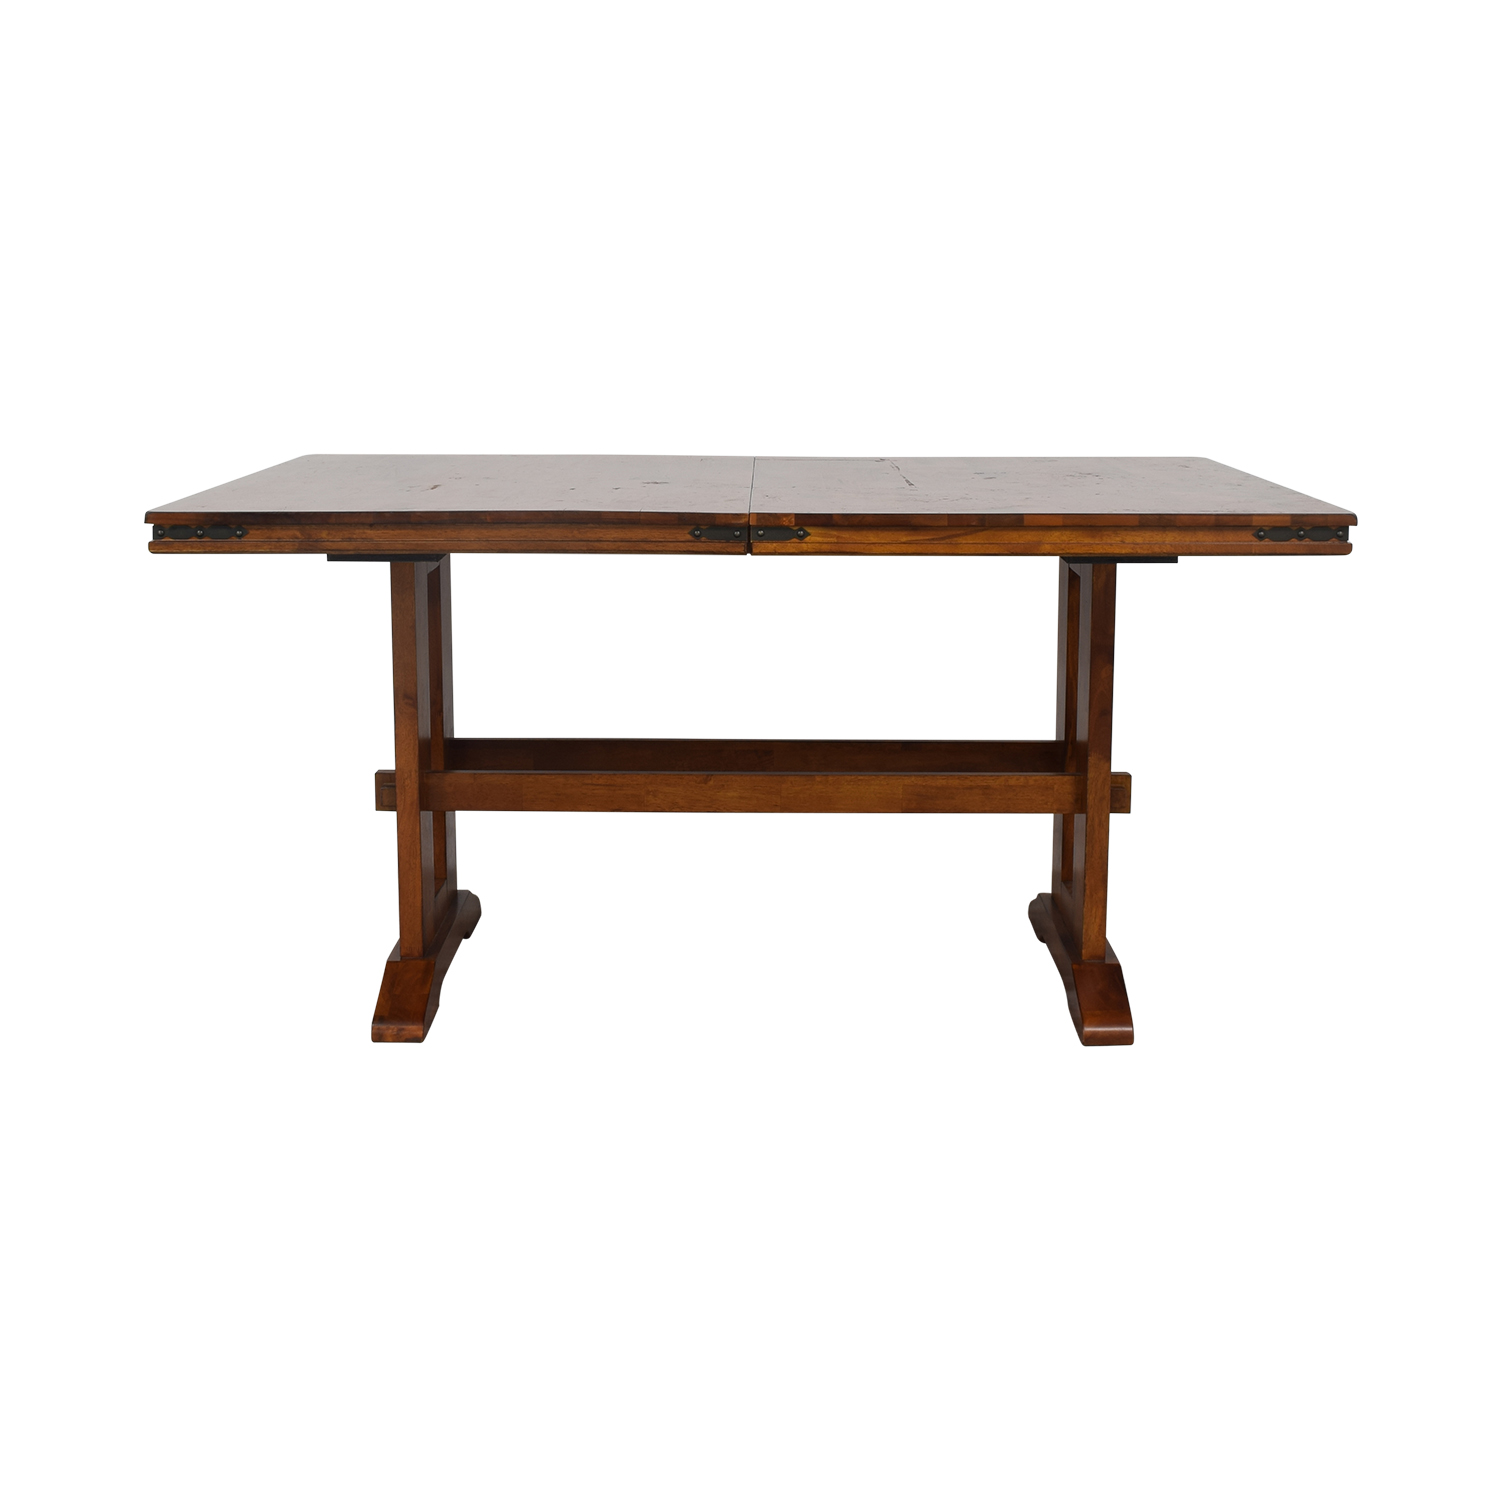 Lenox Extendable Dining Table / Dinner Tables